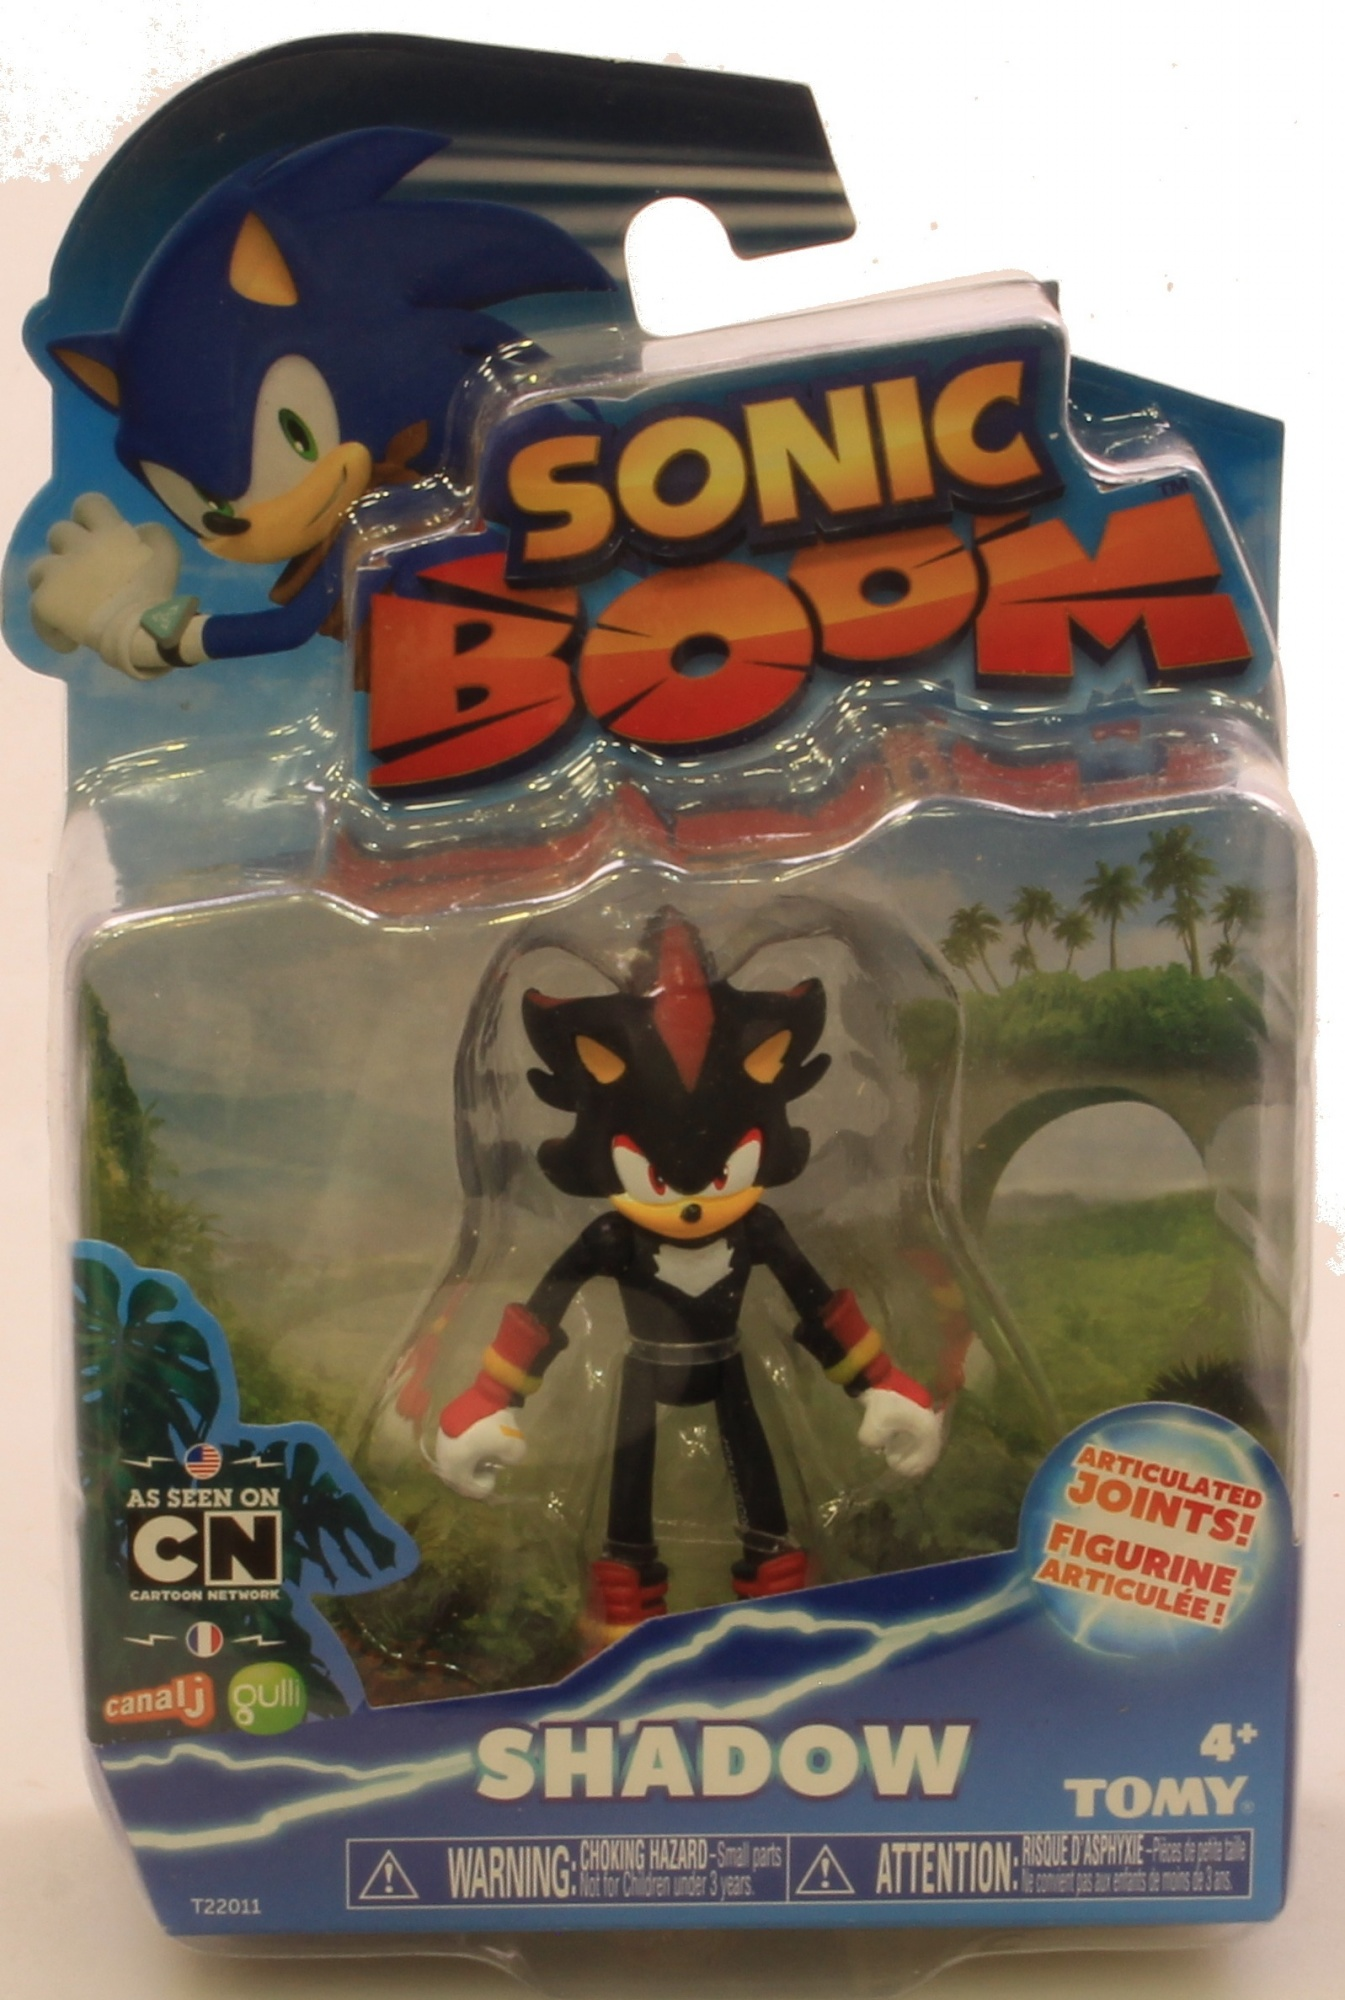 Sonic The Hedgehog 7 6cm Sonic Boom Shadow The Hedgehog Articulated Figure By Sonic The Hedgehog Shop Online For Toys In The United Arab Emirates